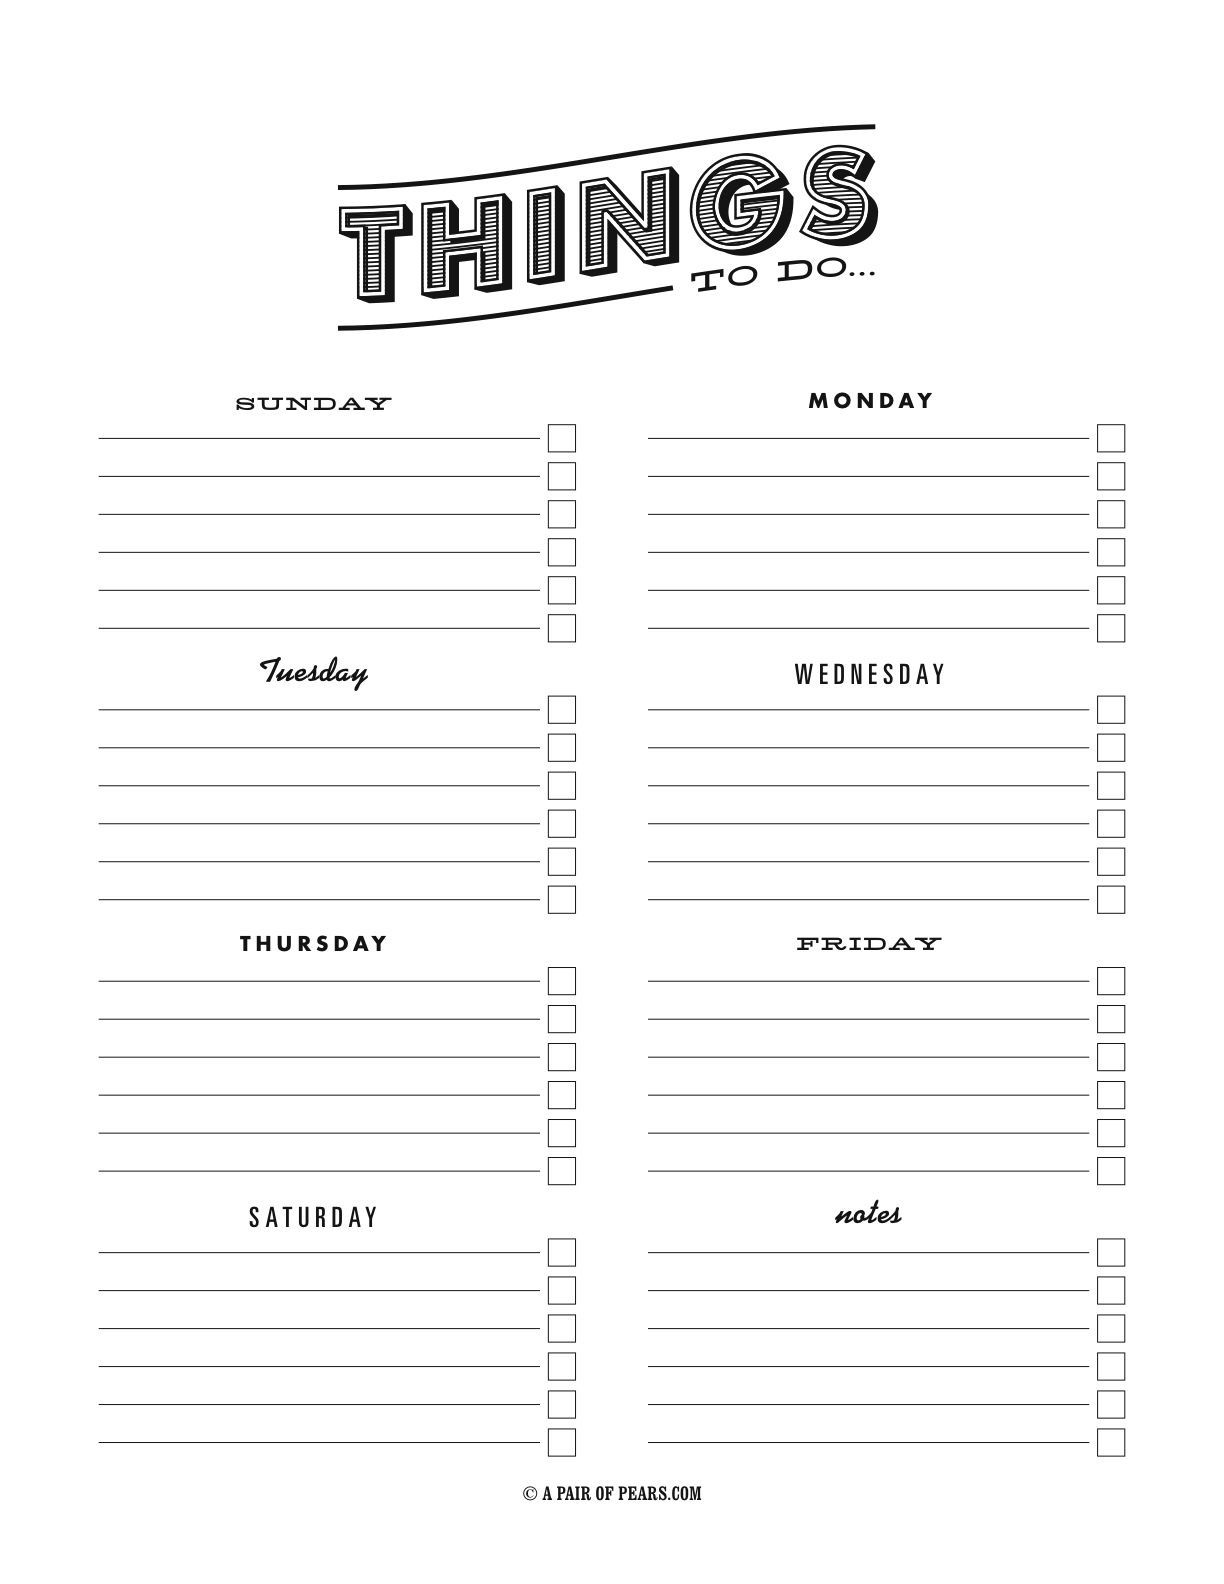 003 Fascinating To Do Checklist Template Image Full